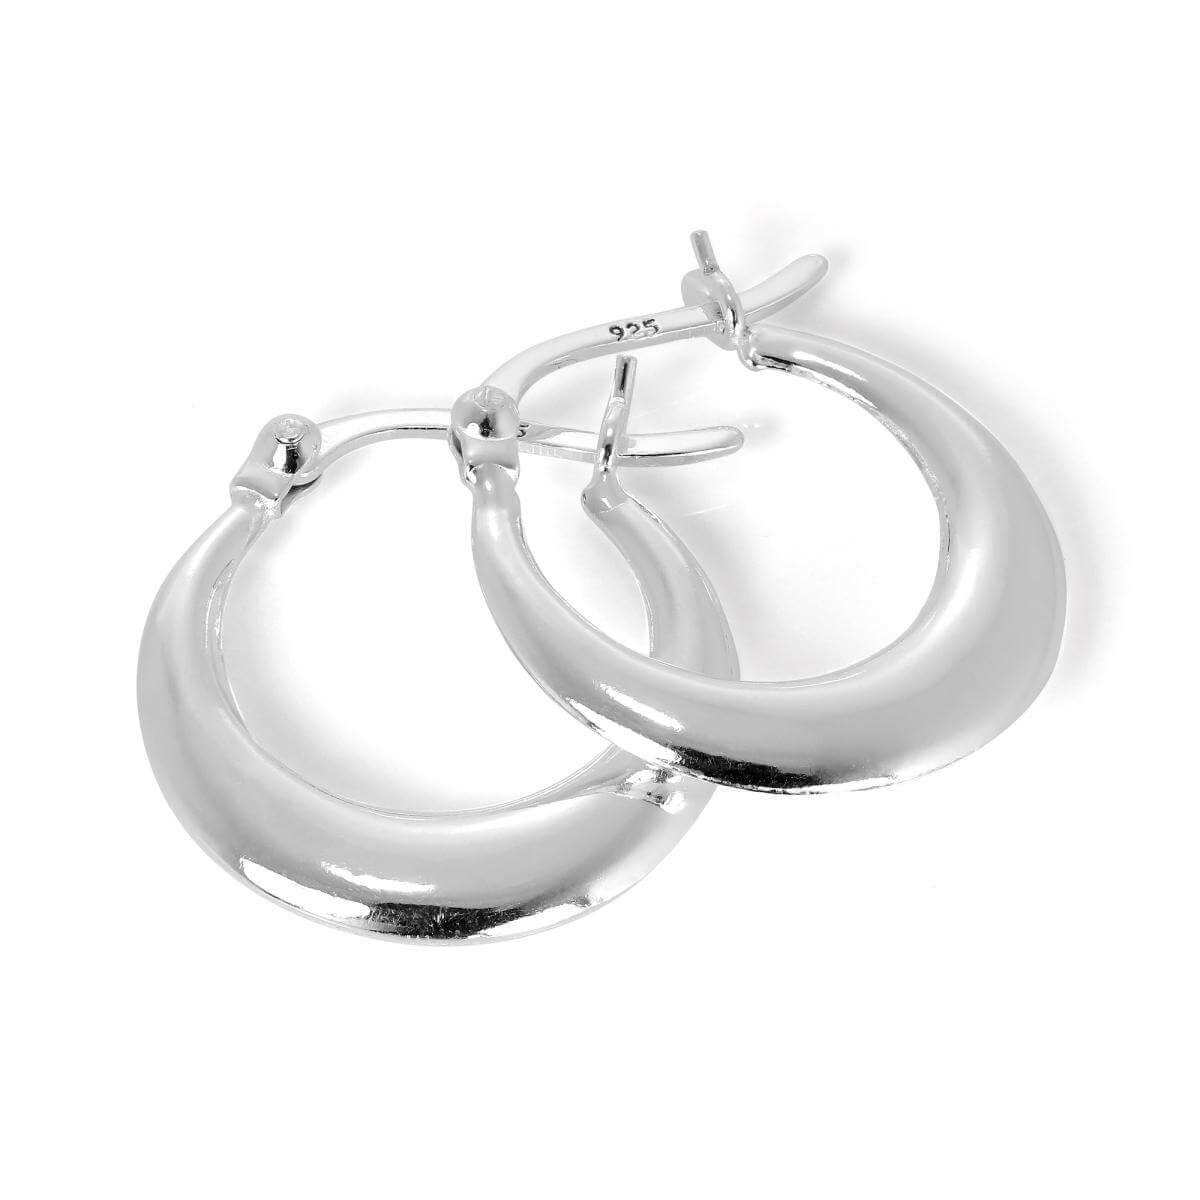 Plain Sterling Silver Small Creole 17mm Hoop Earrings